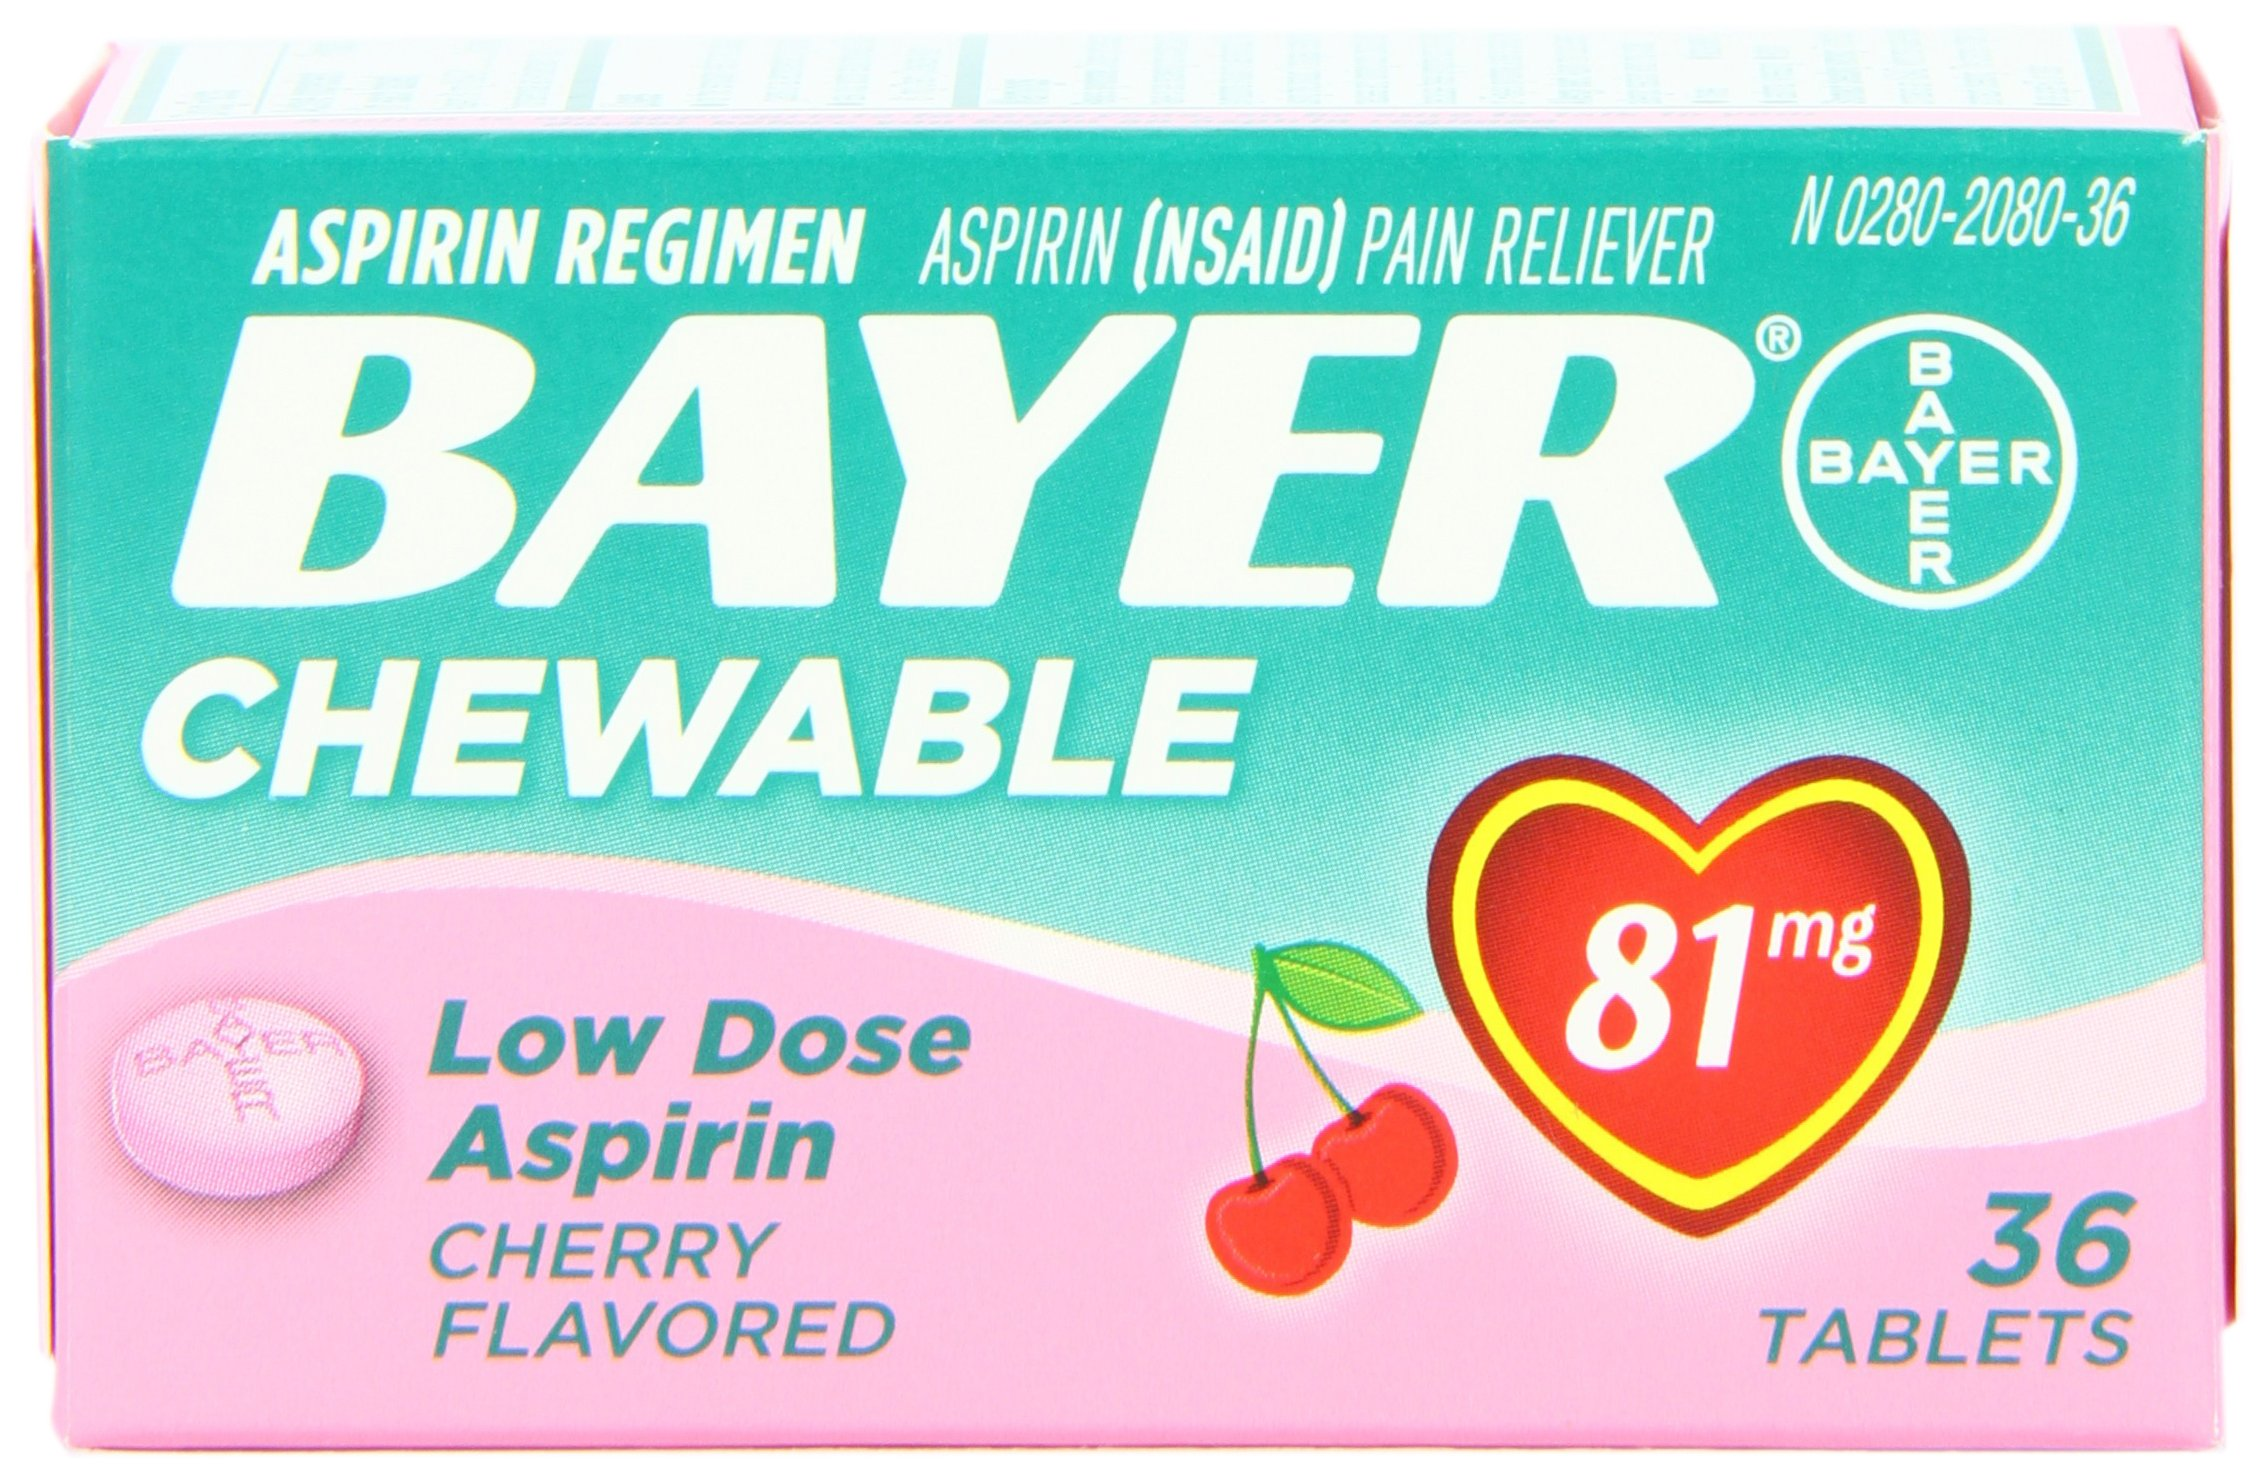 Bayer Chewable Low Dose Baby Aspirin Cherry 81 Mg 36-Count (Pack of 3)